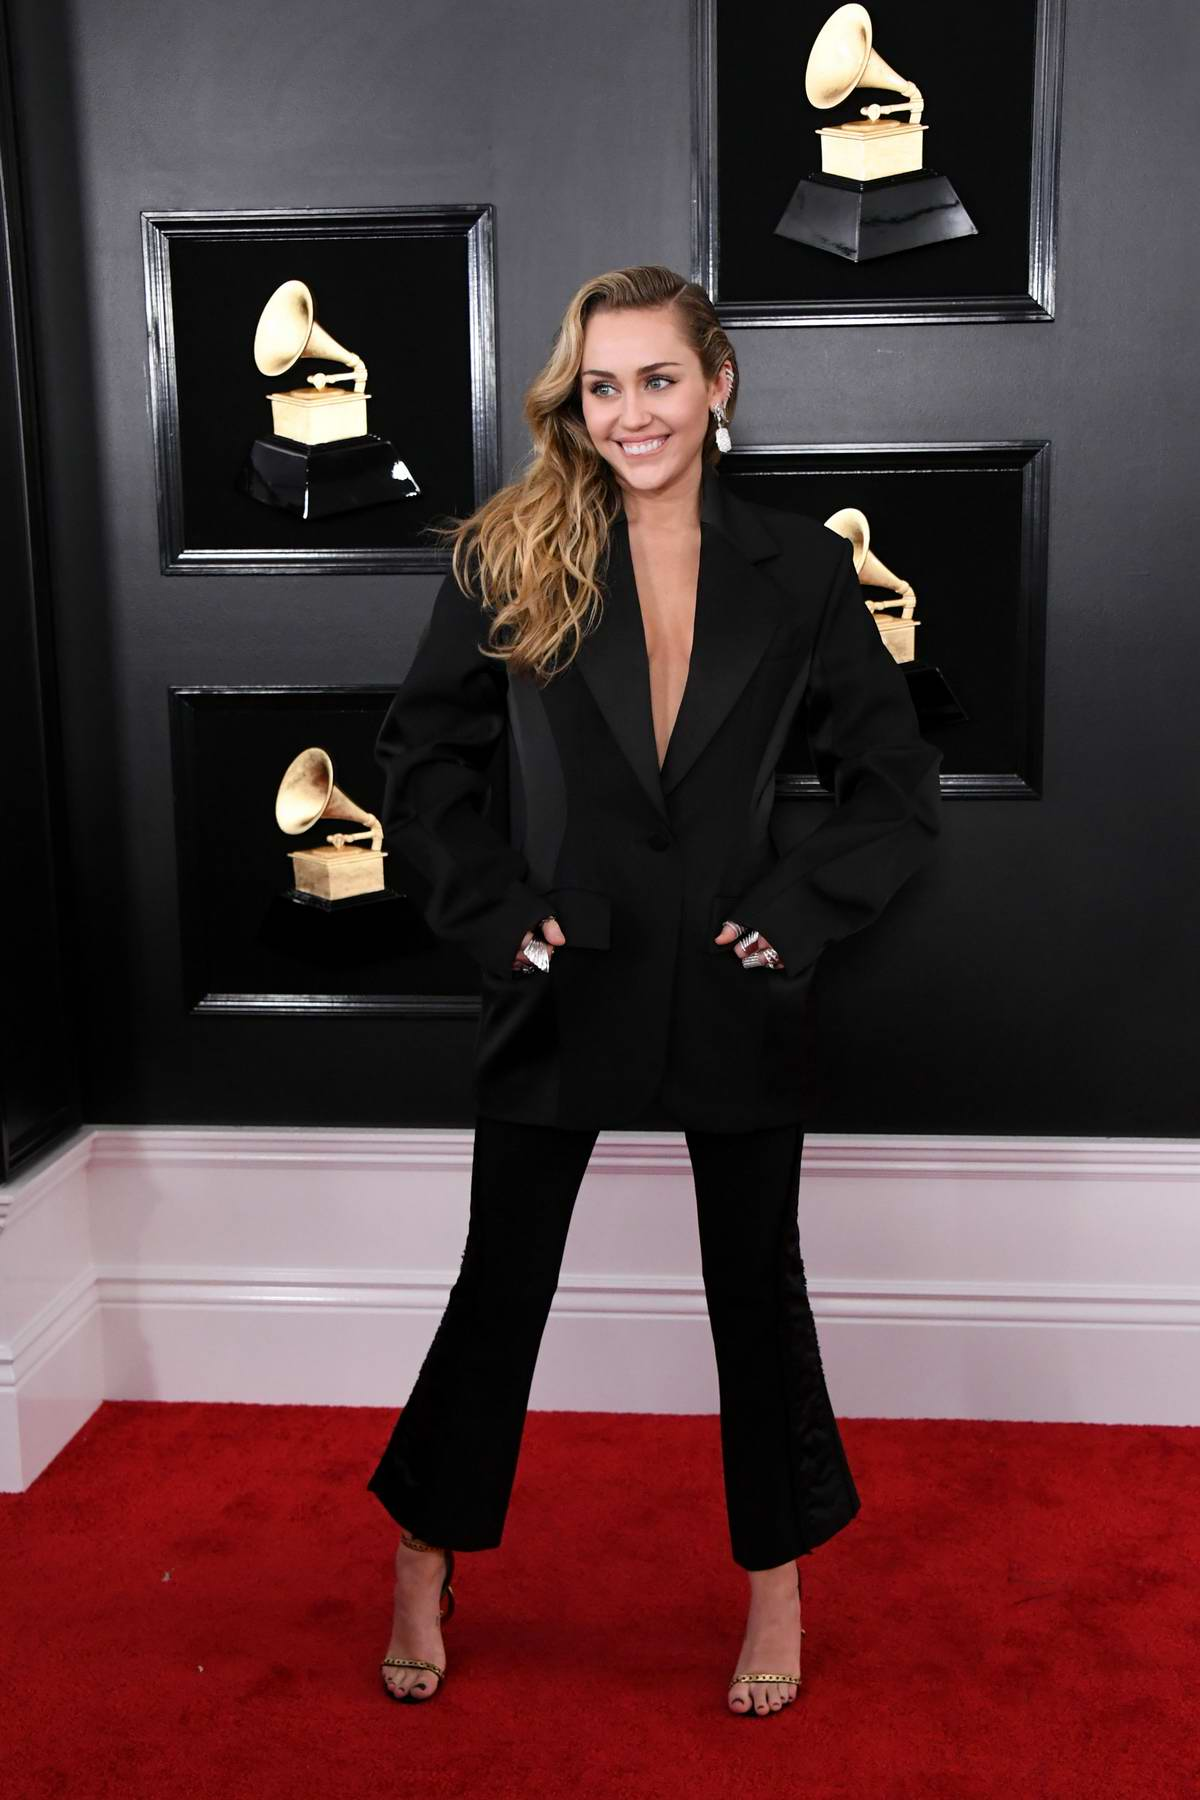 Miley Cyrus attends the 61st Annual GRAMMY Awards (2019 GRAMMYs) at Staples Center in Los Angeles